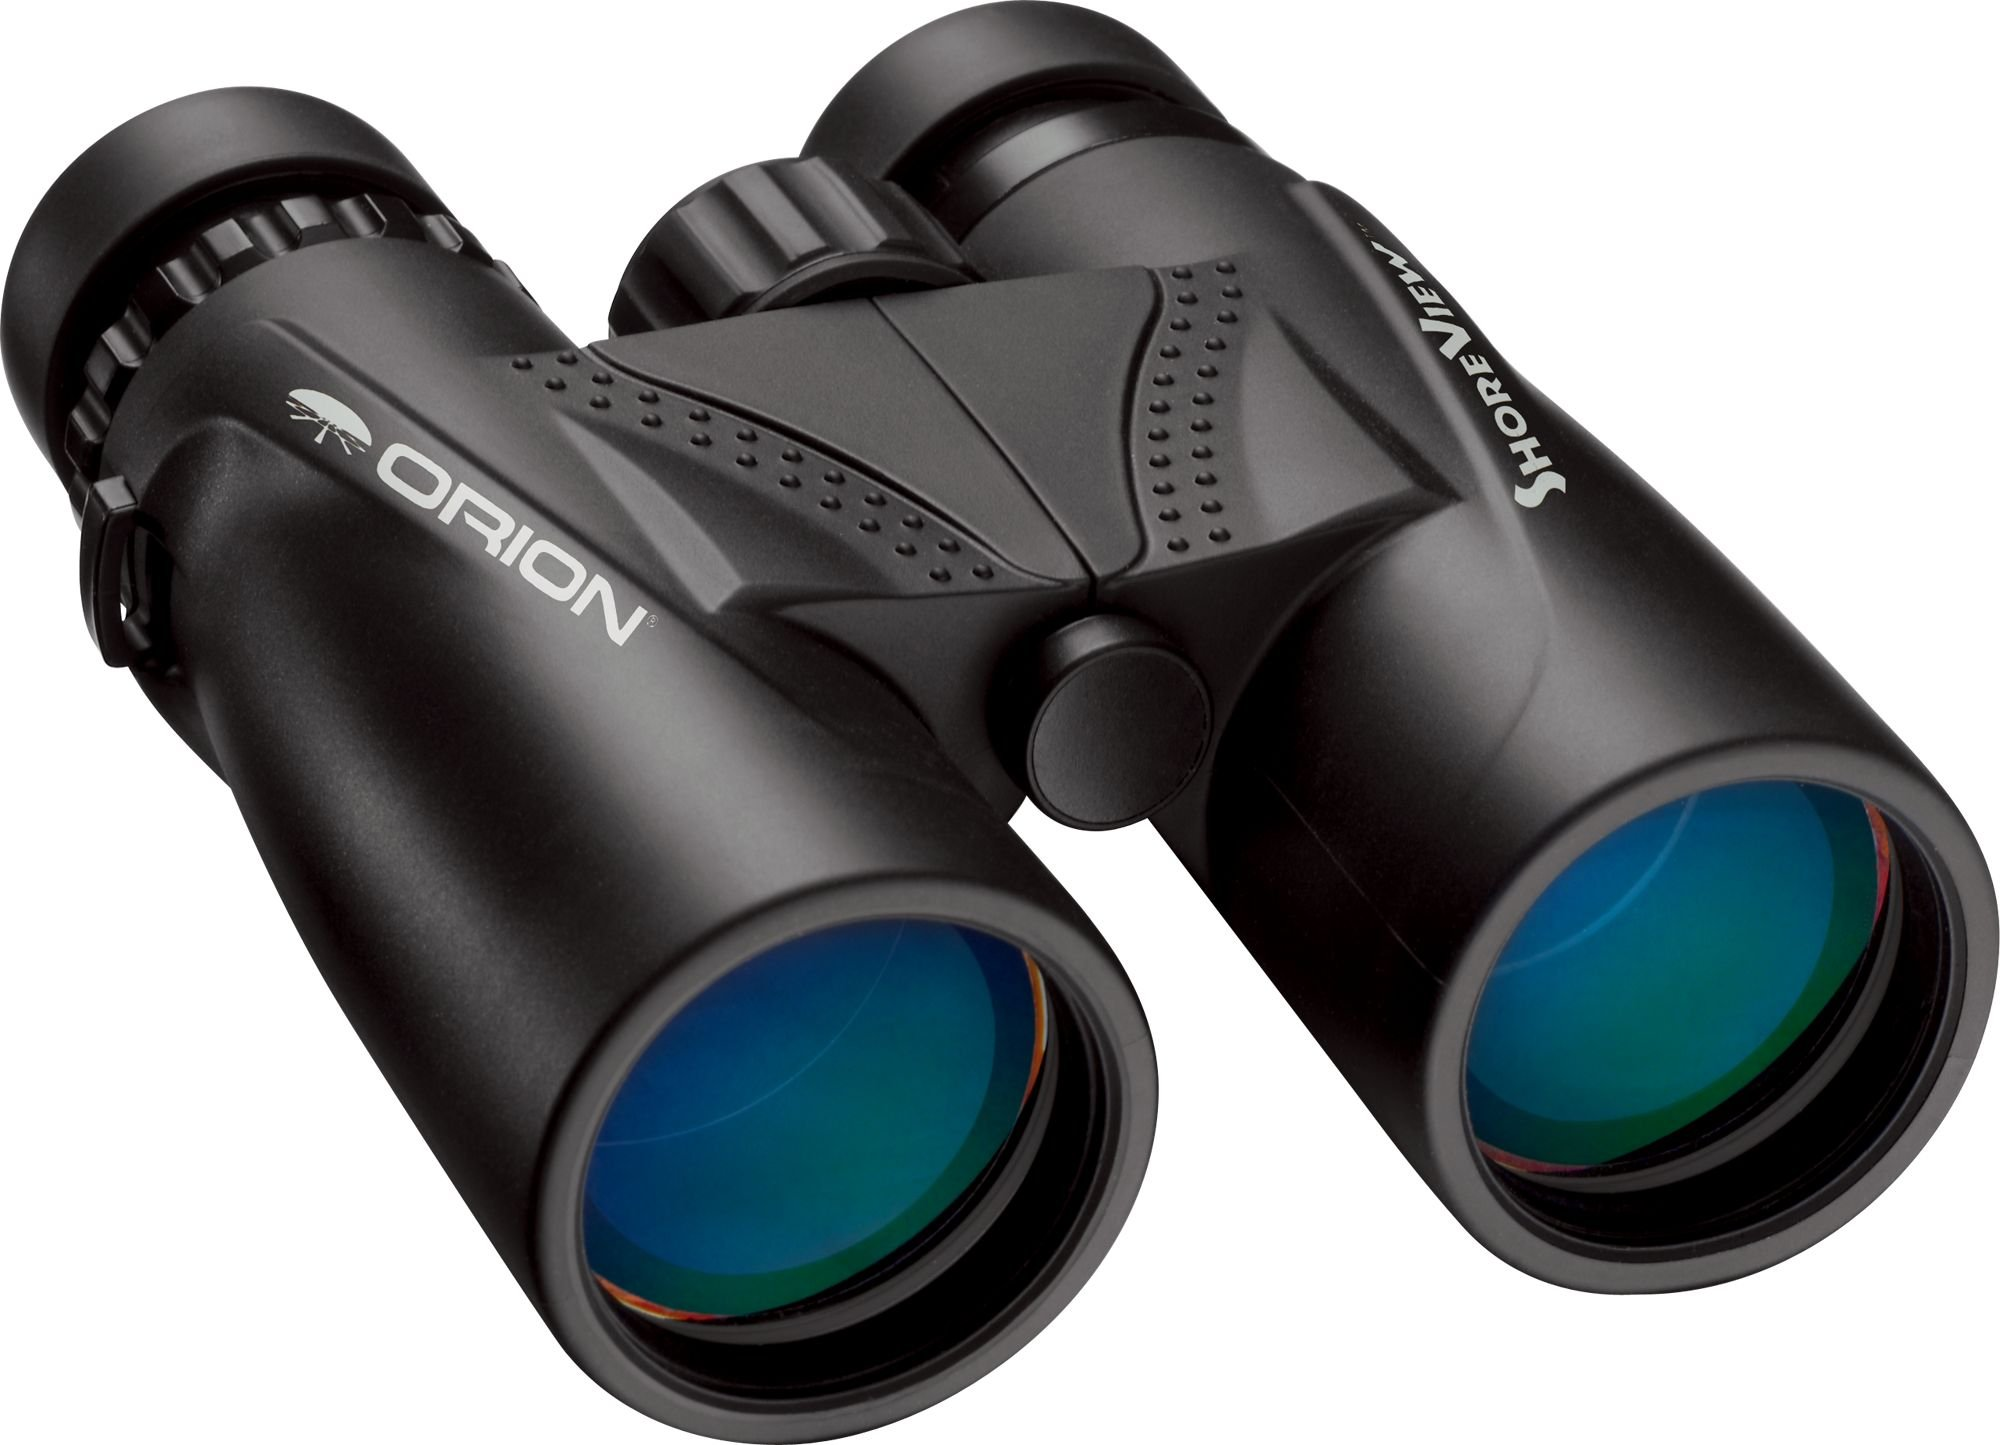 Orion 09471 ShoreView 8 x 42 Waterproof Binoculars (Black) by Orion